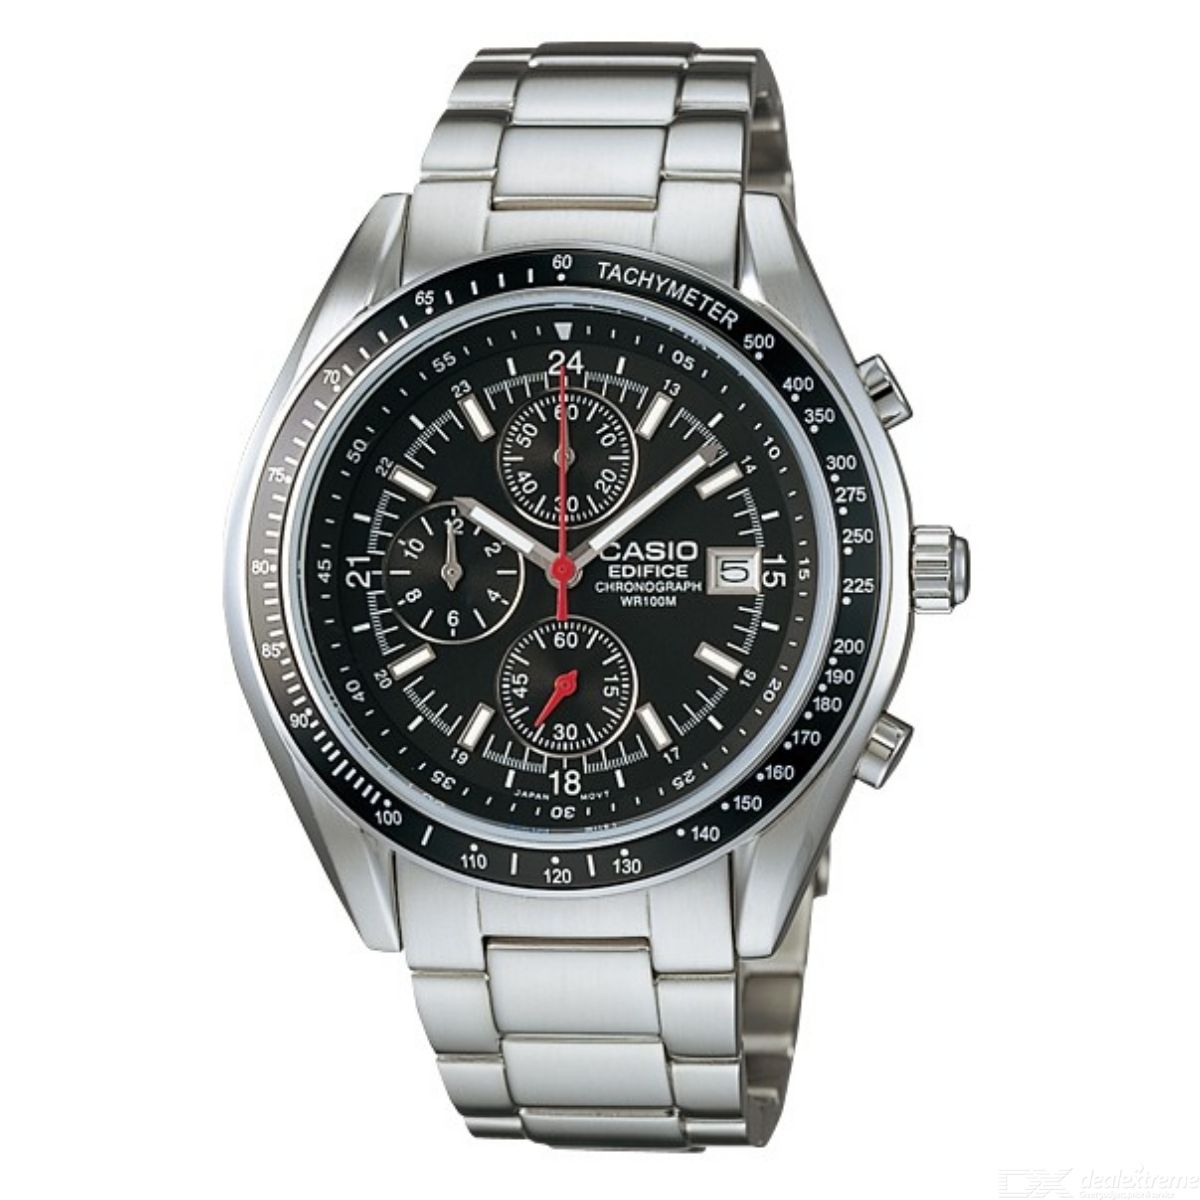 Casio Edifice EF-503D-1AV Watch - Silver + Black (Without Box ... 46b8f881584